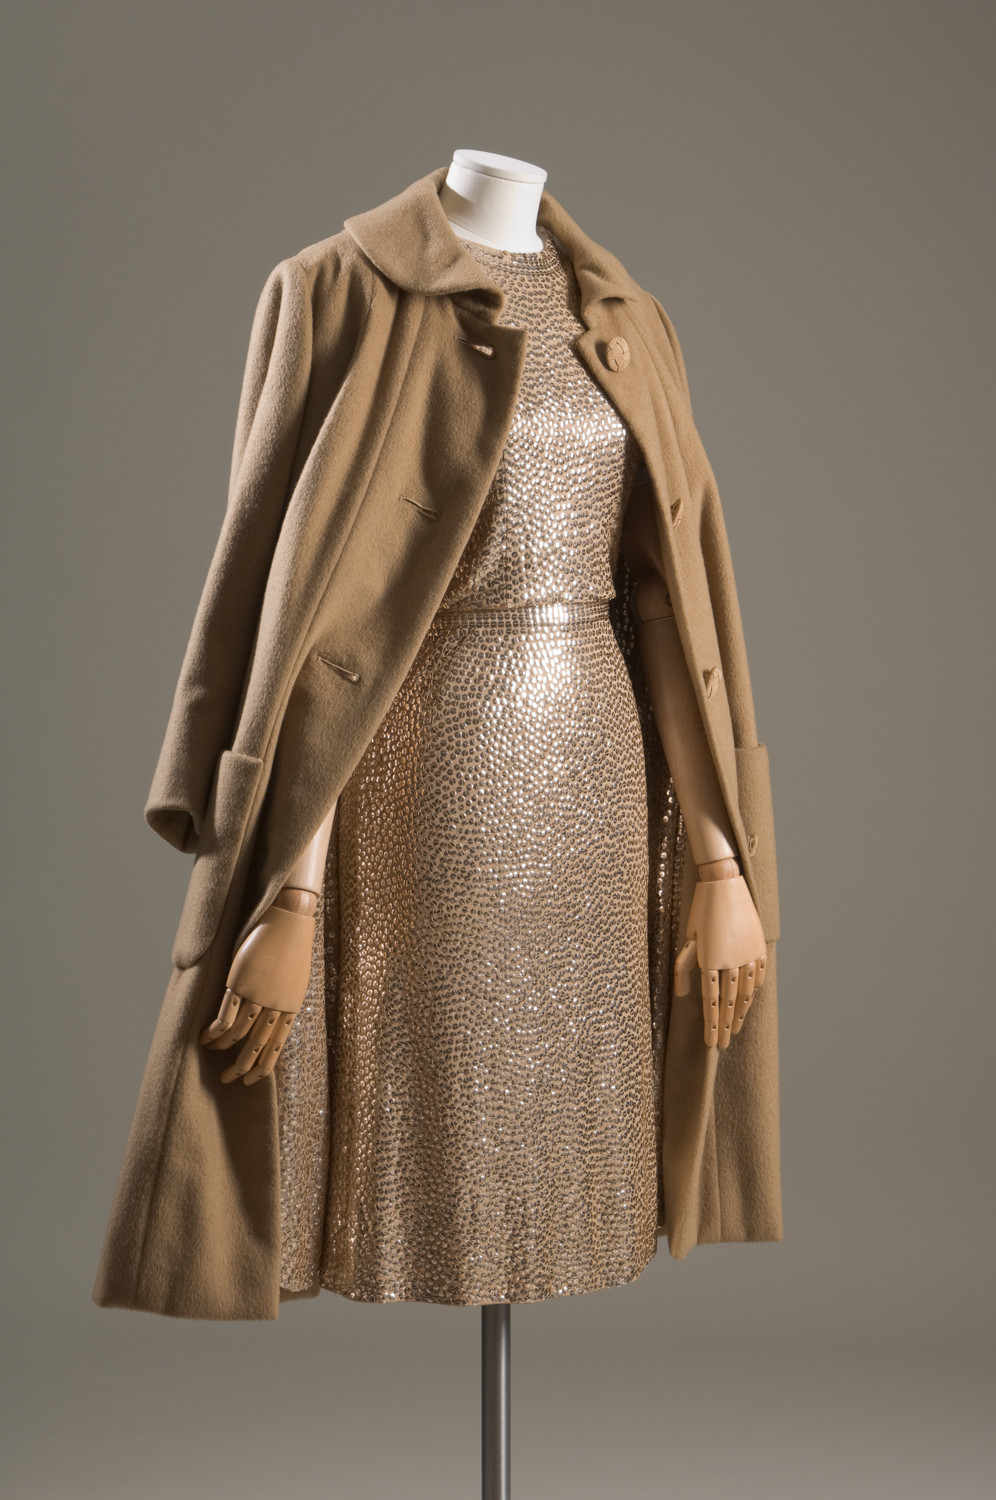 Actress Lauren Bacall once donated a 1950s gold evening coat and dress in cashmere, silk jersey and sequins to The Museum at Fashion Institute of Technology. The Traina-Norell outfit is part of an exhibition showcasing the work of designer Norman Norell.